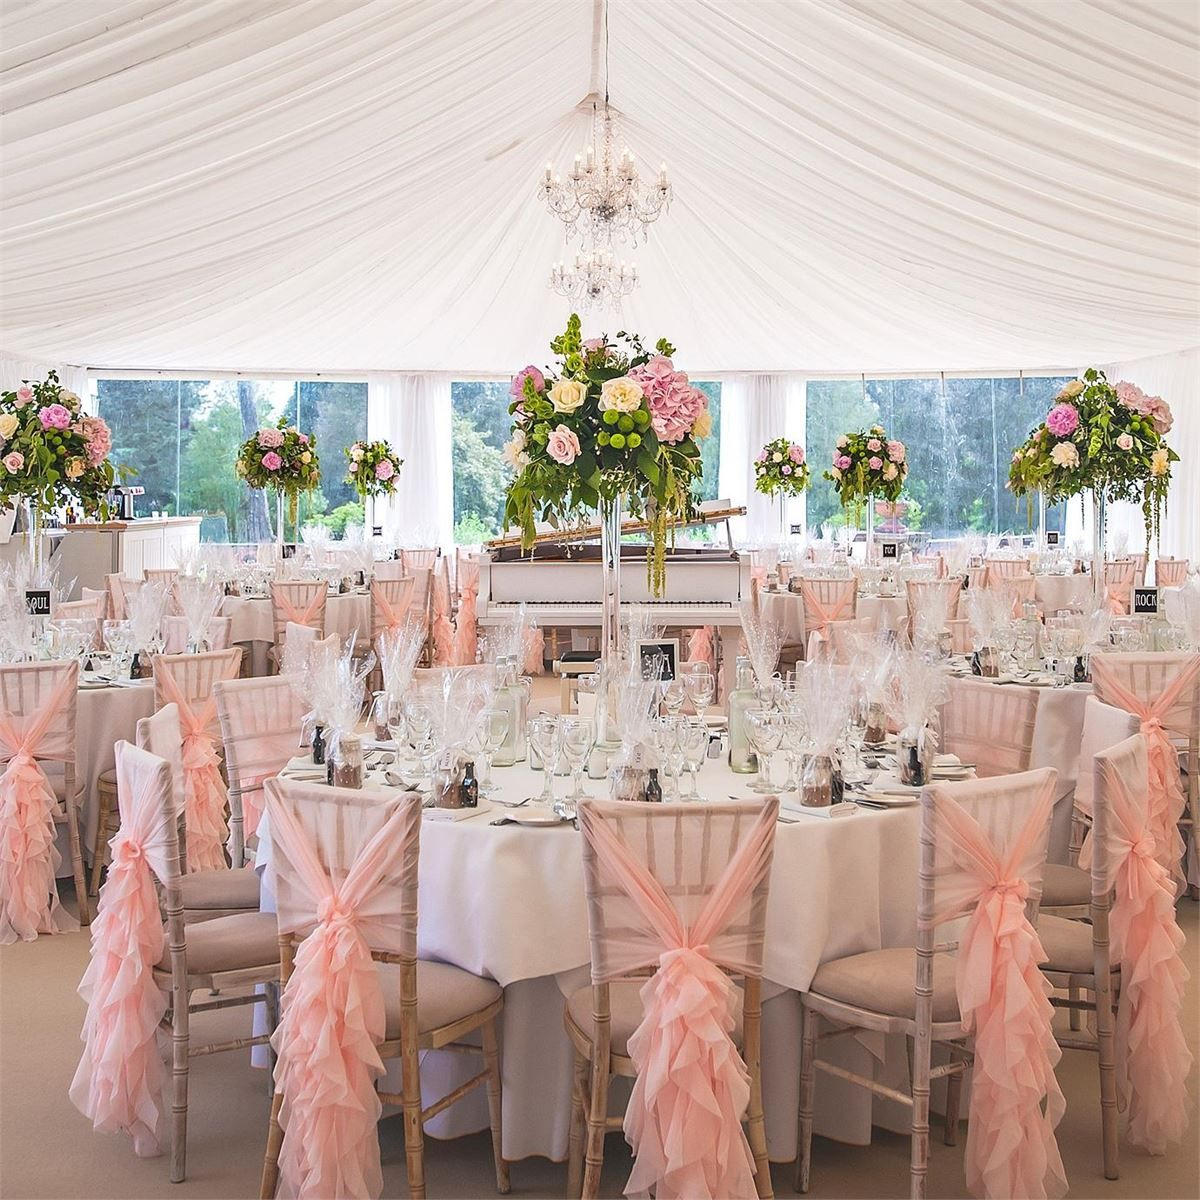 Ellis events creative chair cover hire and venue styling in essex ellis events creative chair cover hire and venue styling in essex wedding chair covers hitched junglespirit Images